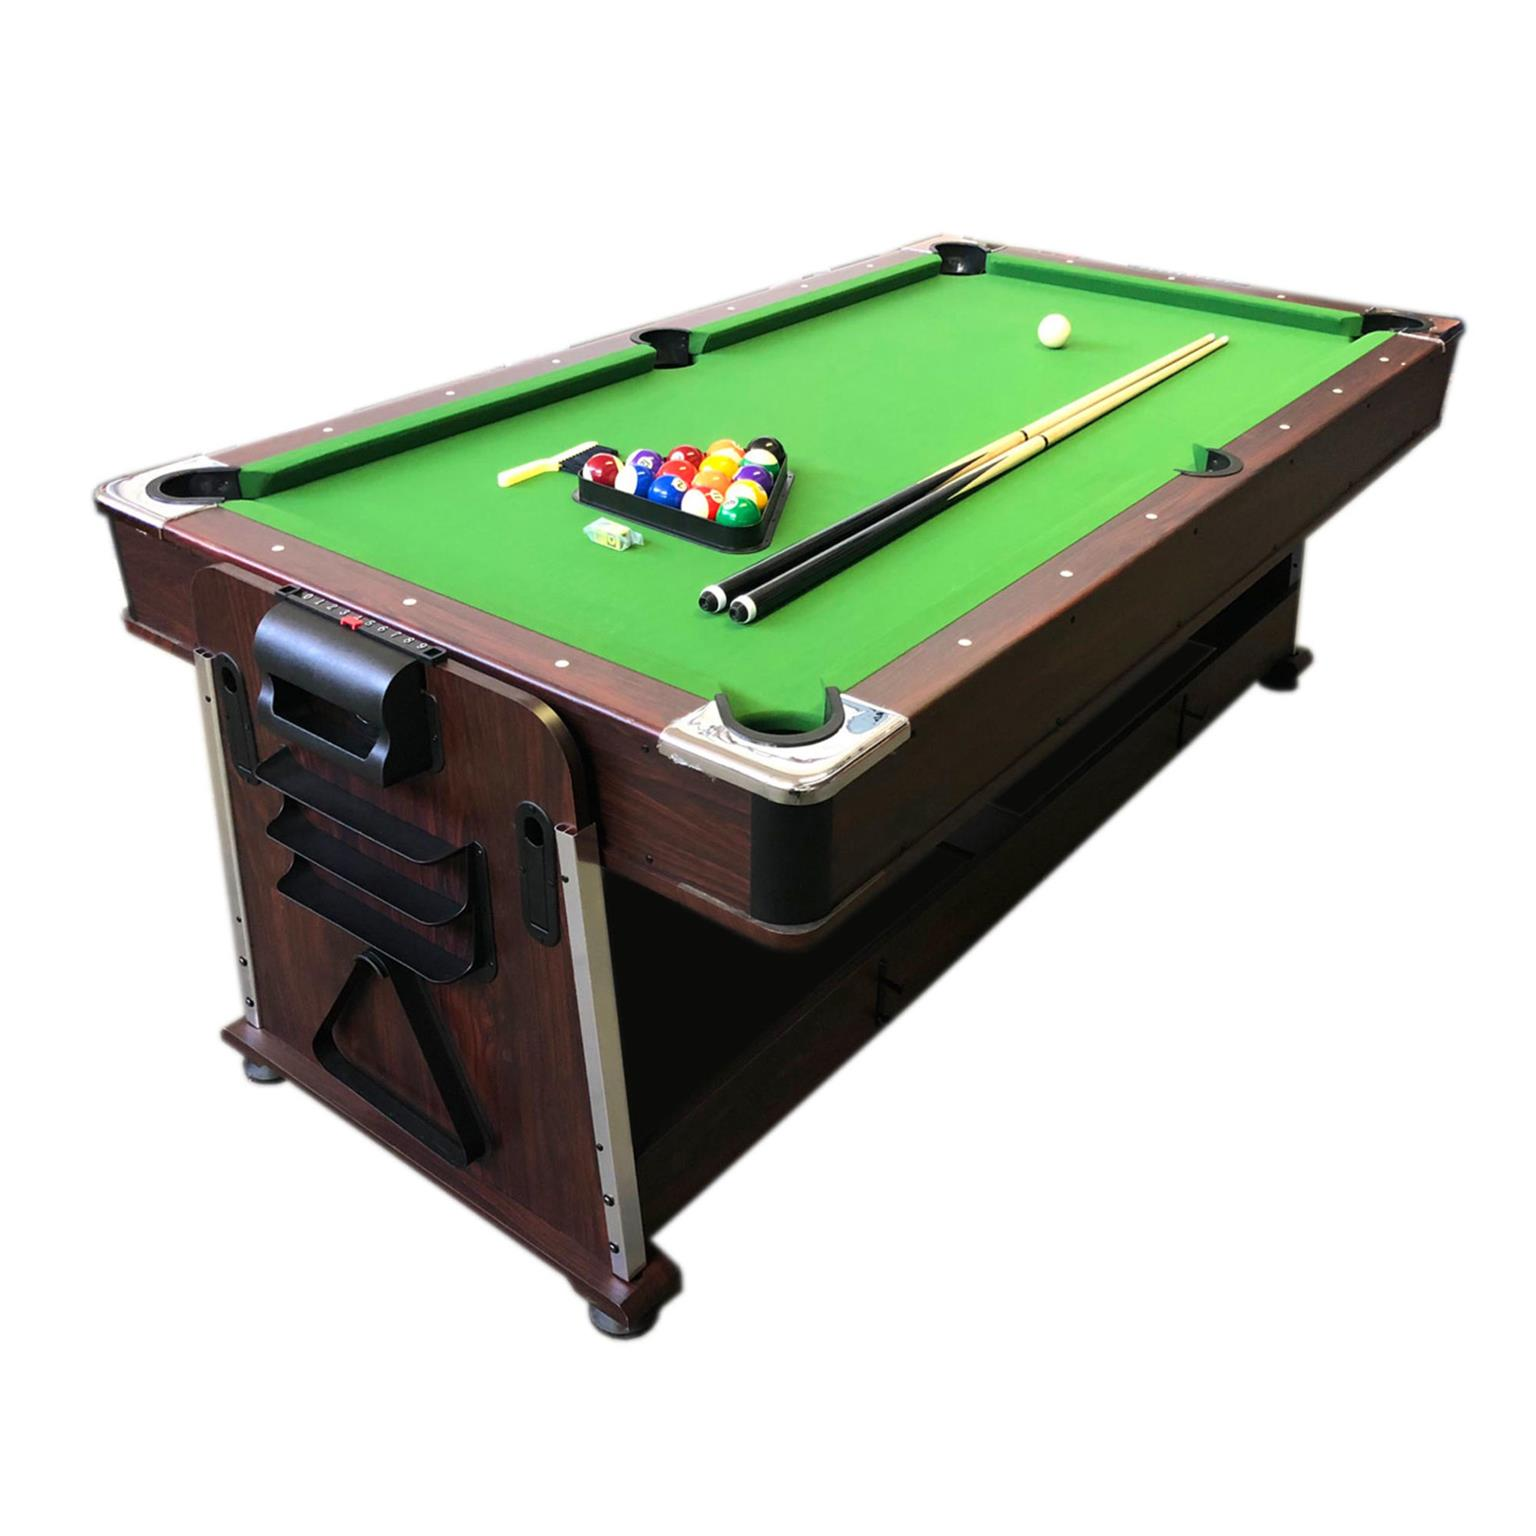 4 in 1 - 7Ft Green Pool Table + Air Hockey + Tennis Table Tennis + Dinner table